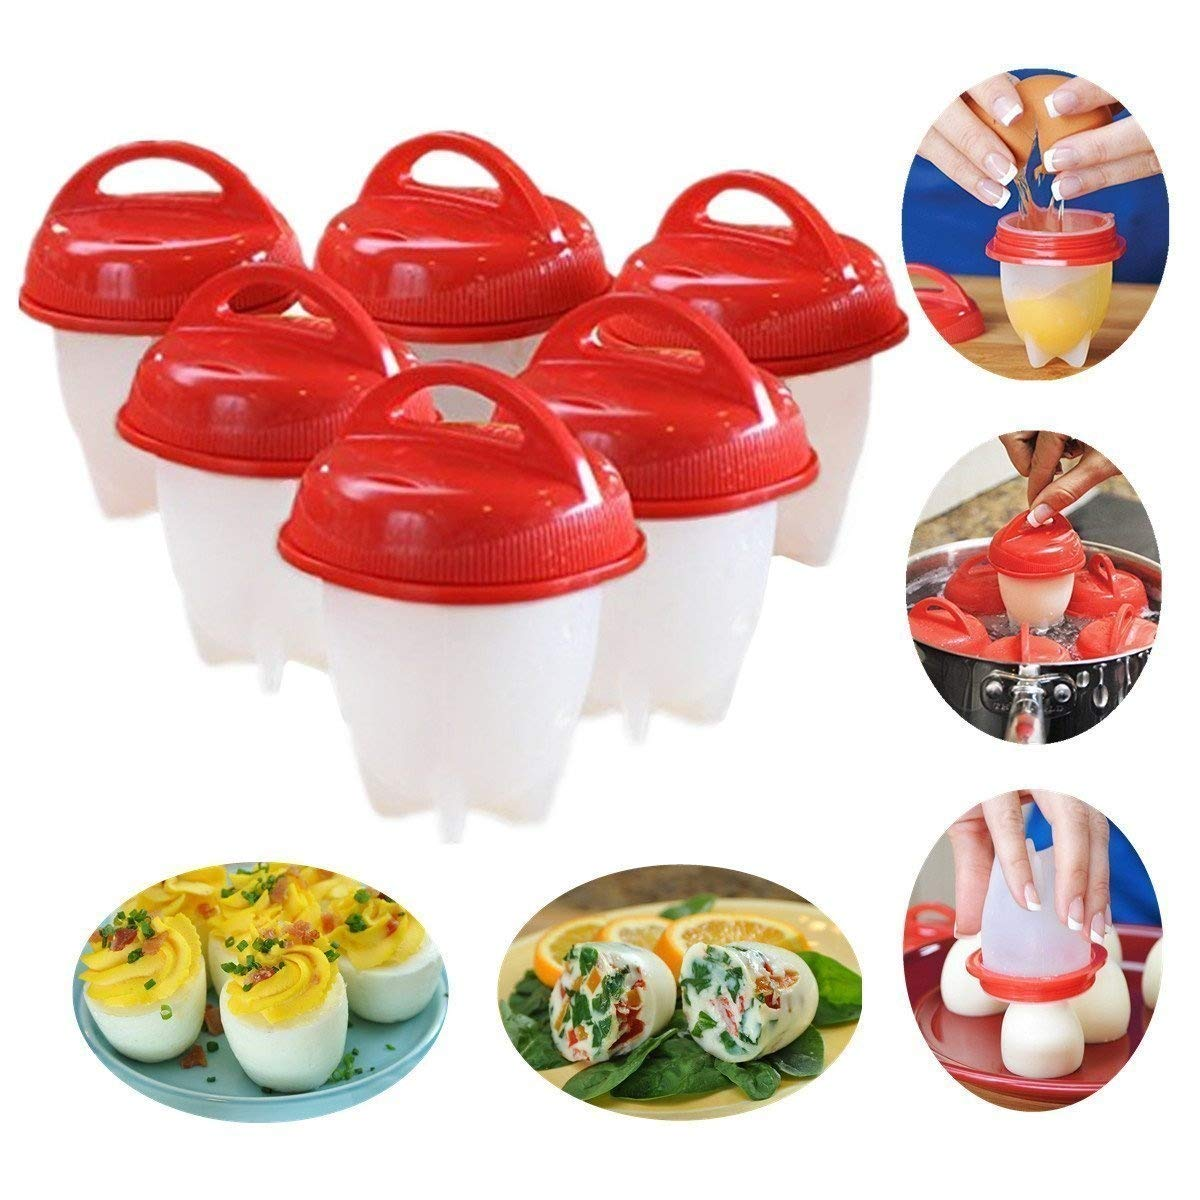 lemogo Silicone Egg Cooker Hard & Soft Maker, No Shell, Non Stick Silicone, Boiled, Steamer, Eggies (6 Packs)